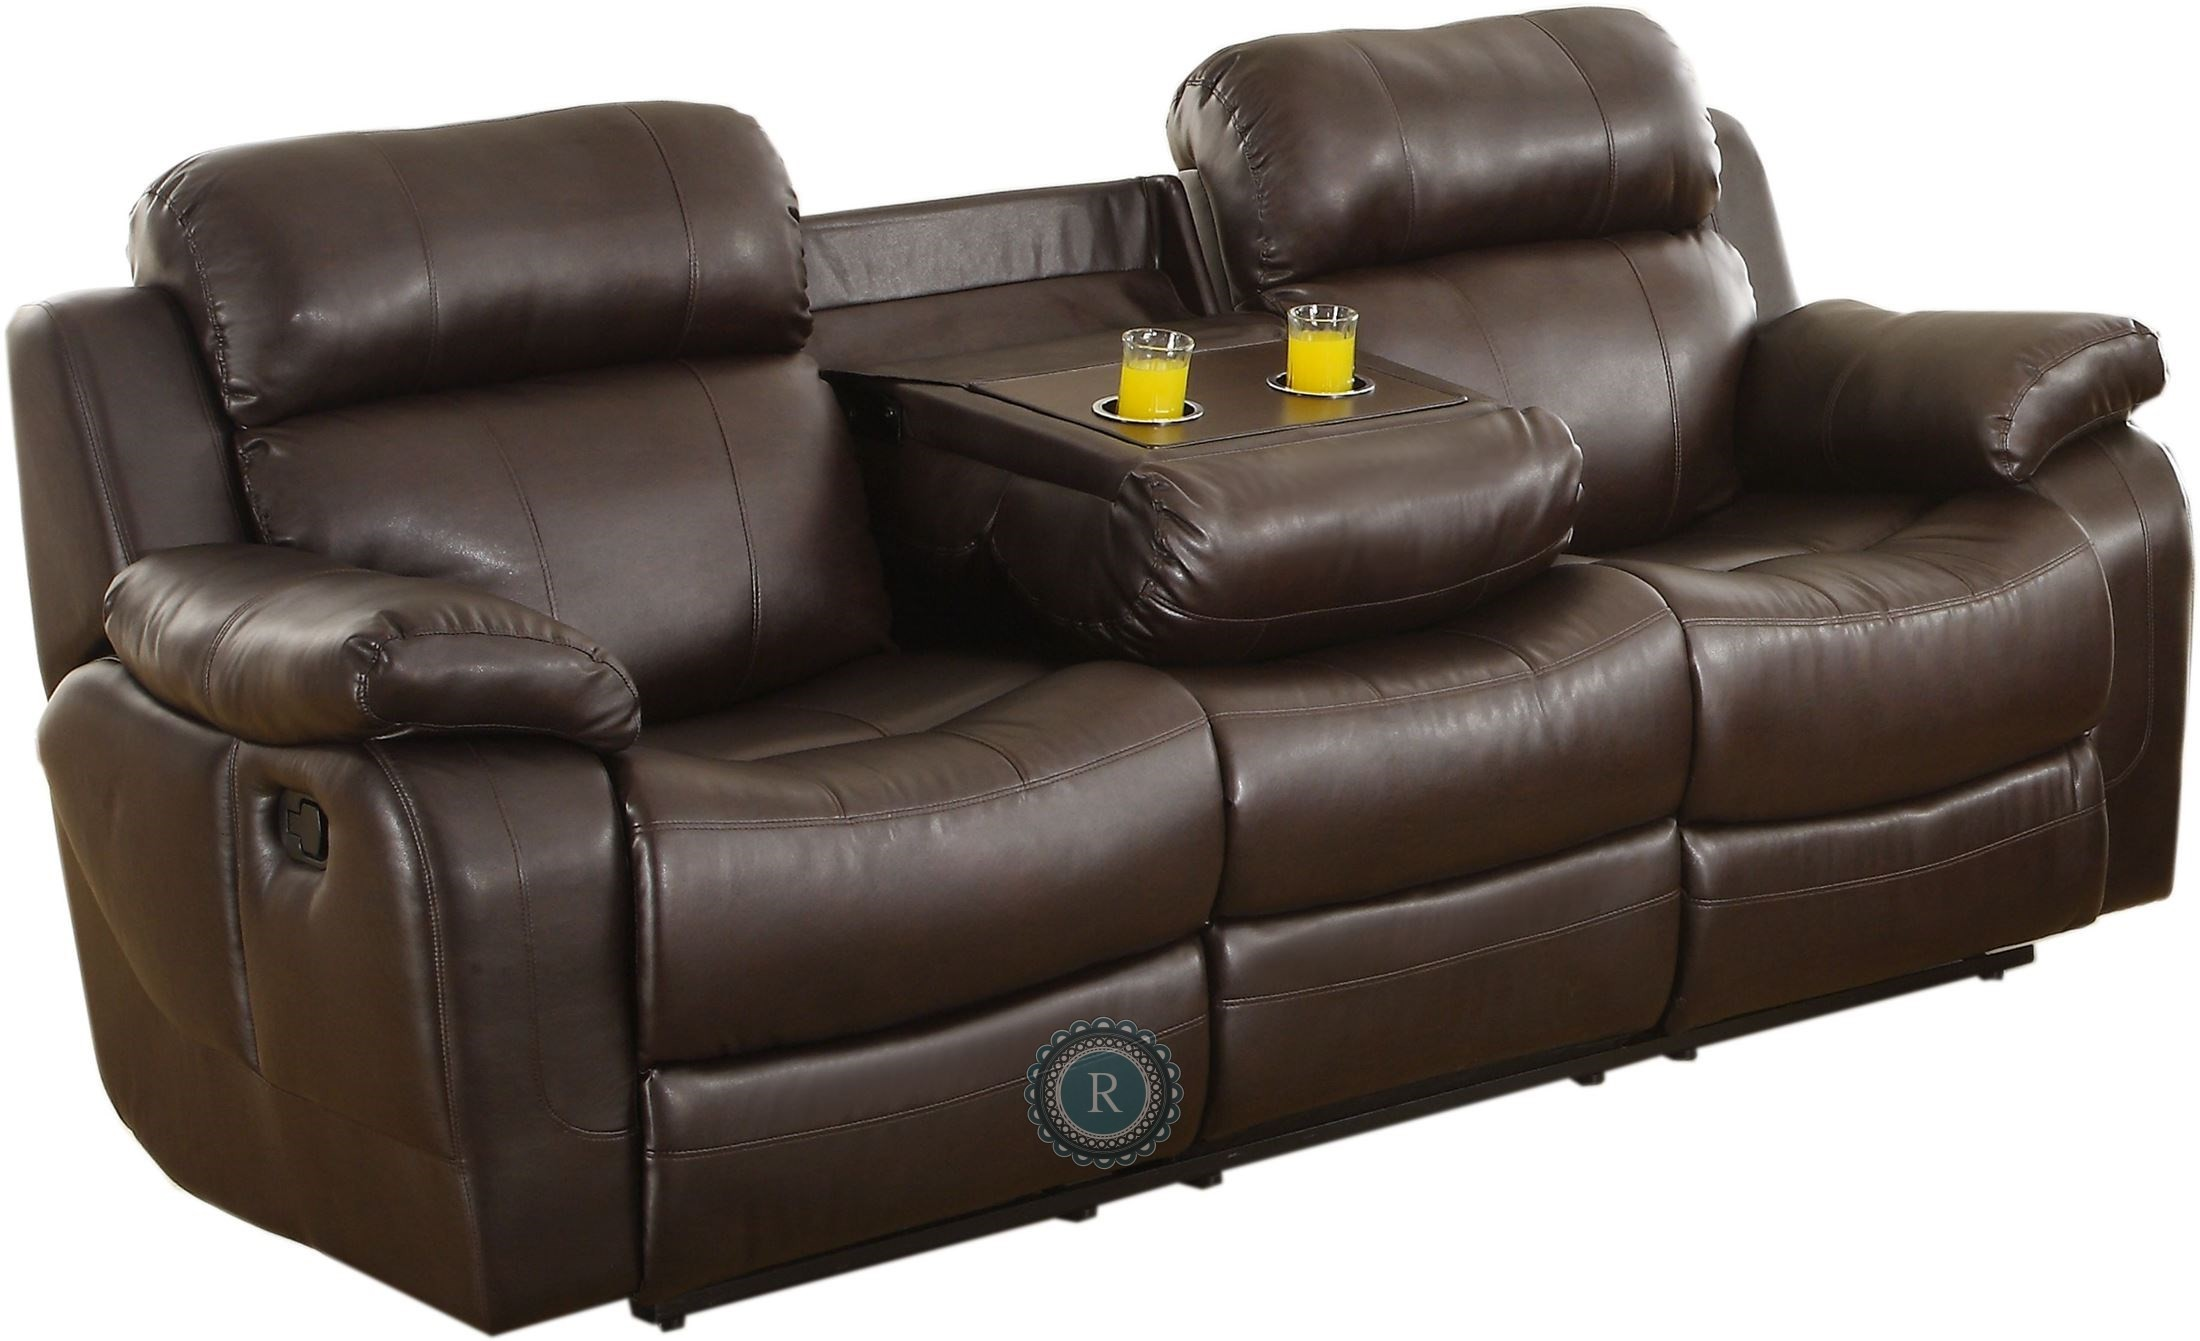 double recliner chairs with cup holders oversized anti gravity chair marille dark brown reclining sofa center drop